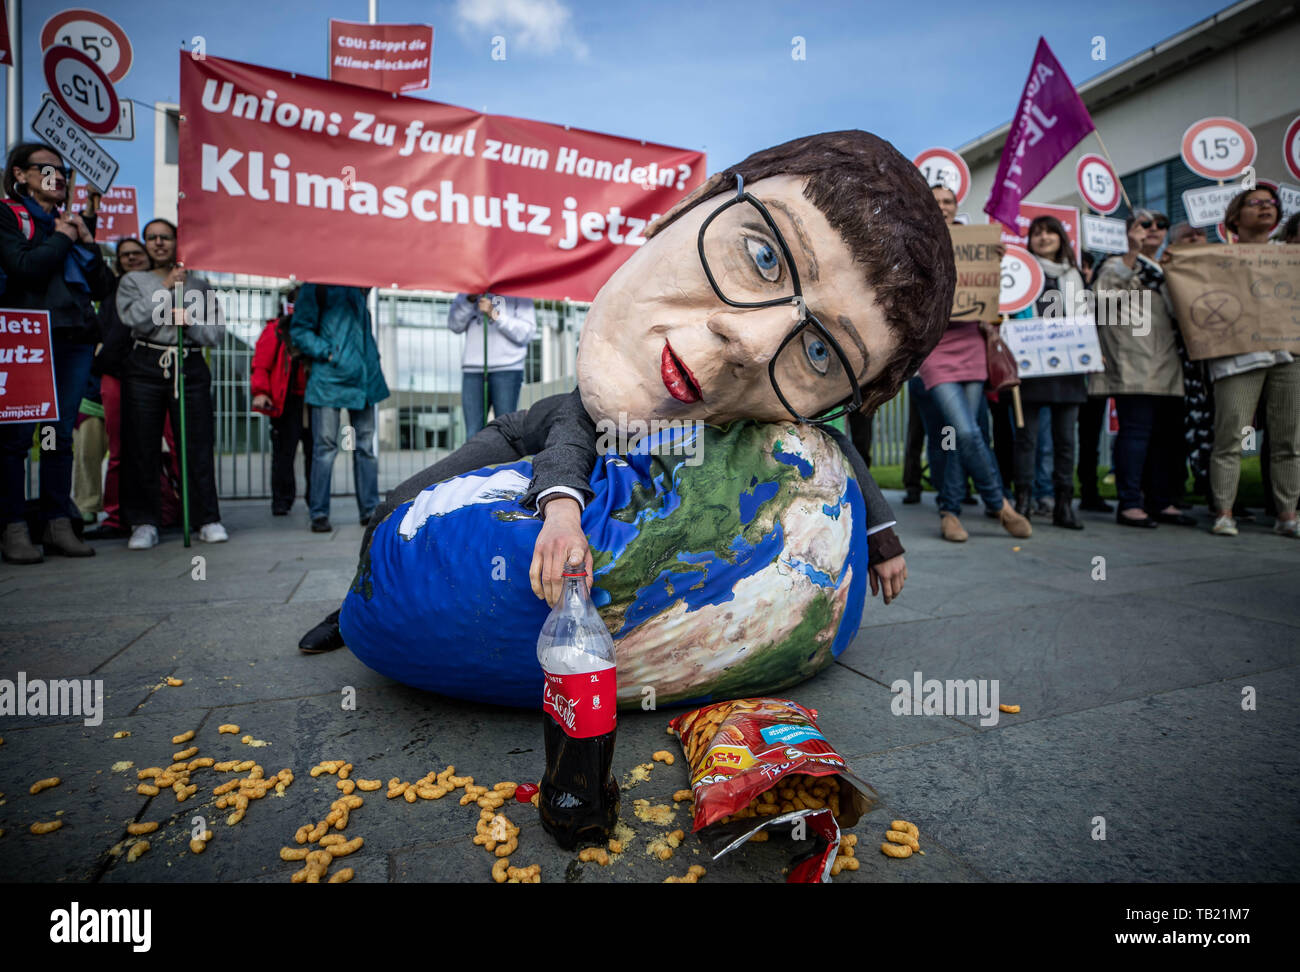 Berlin, Germany. 29th May, 2019. An activist from Campact, wearing a large mask, which CDU Chairwoman Annegret Kramp-Karrenbauer is supposed to depict, lies at a rally criticising the Union's lack of climate protection. The Climate Cabinet meets at the same time in the Chancellor's Office. Credit: Michael Kappeler/dpa/Alamy Live News Stock Photo